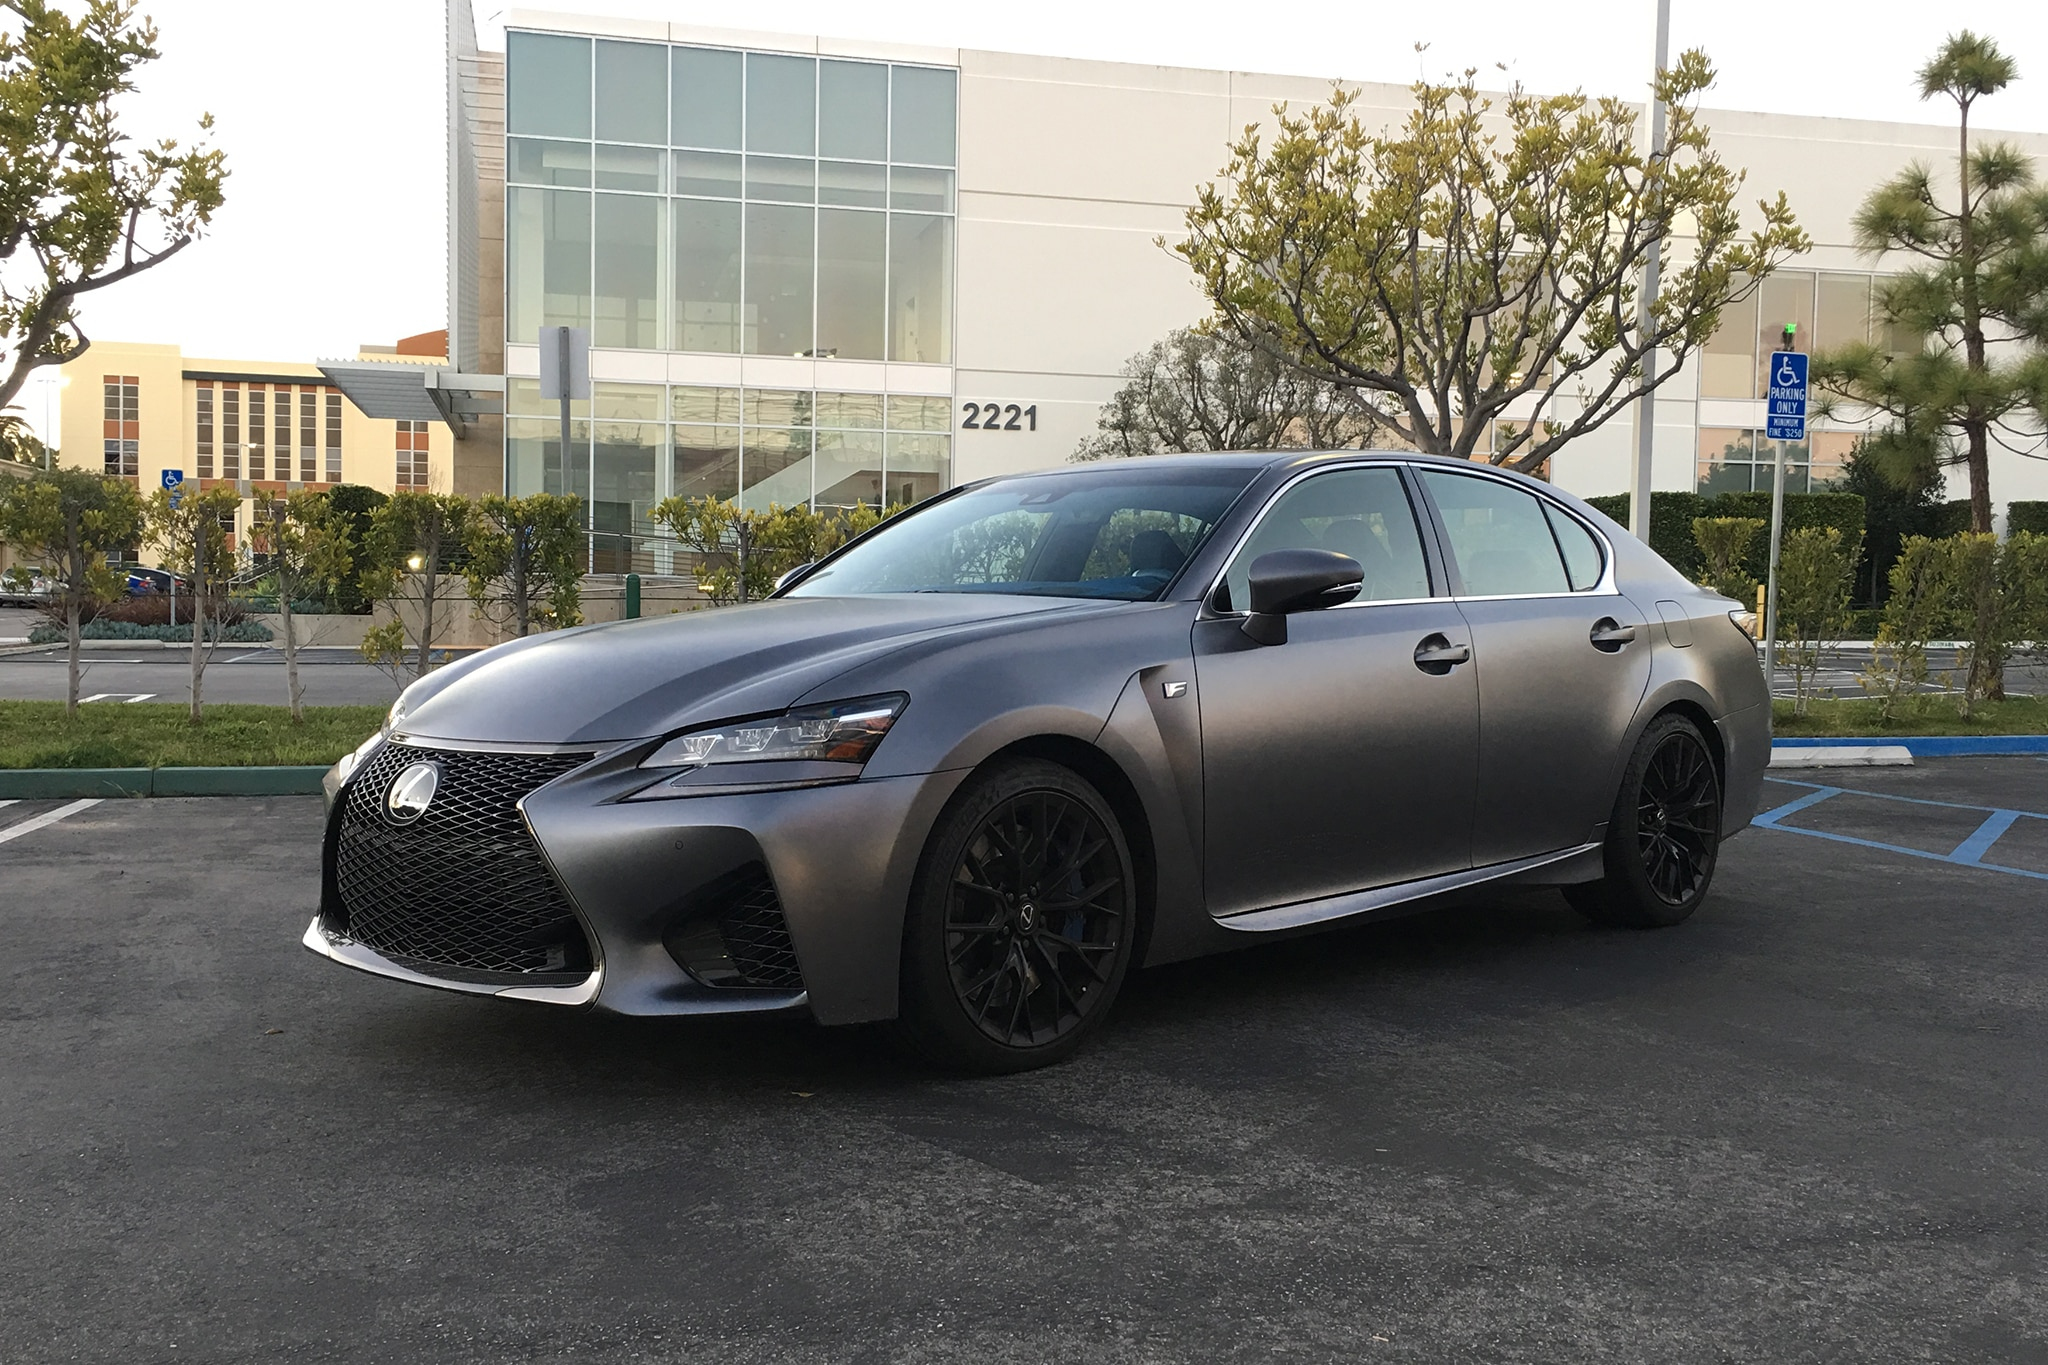 2019 Lexus GS F Owners Manual